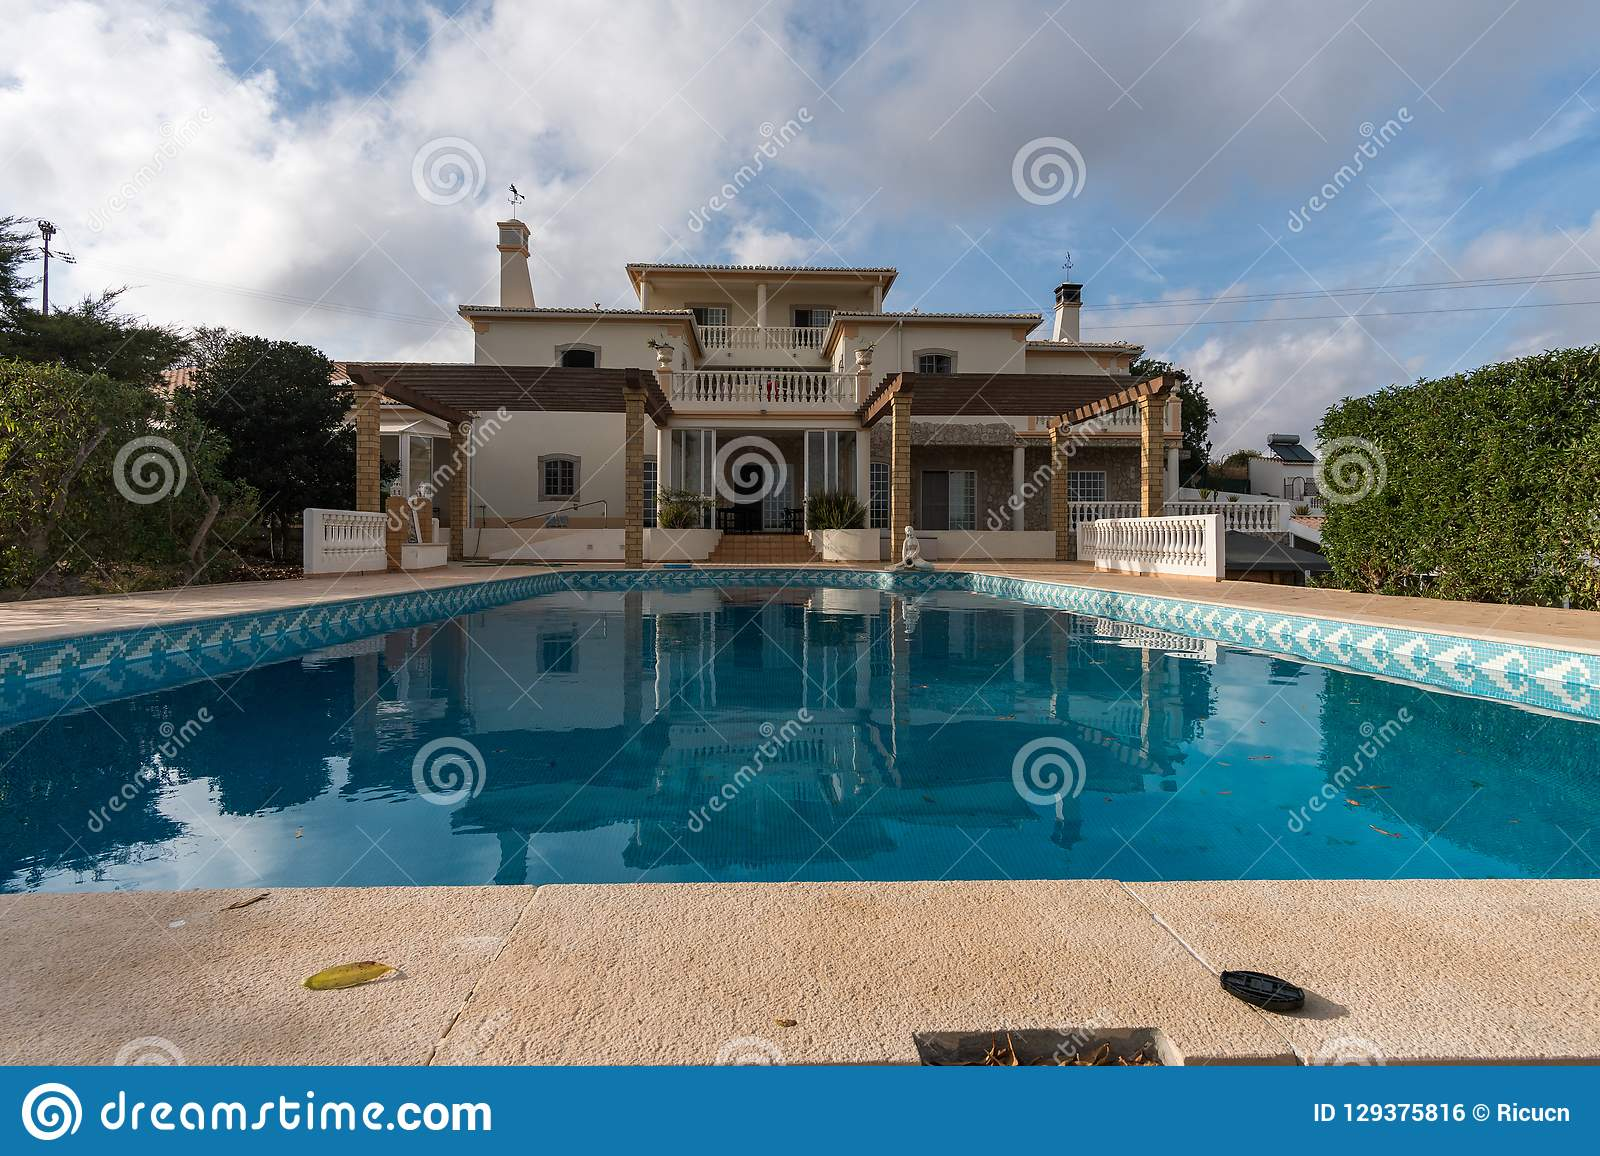 Big House With Swimming Pool In A Cloudy Day Editorial Photo ...